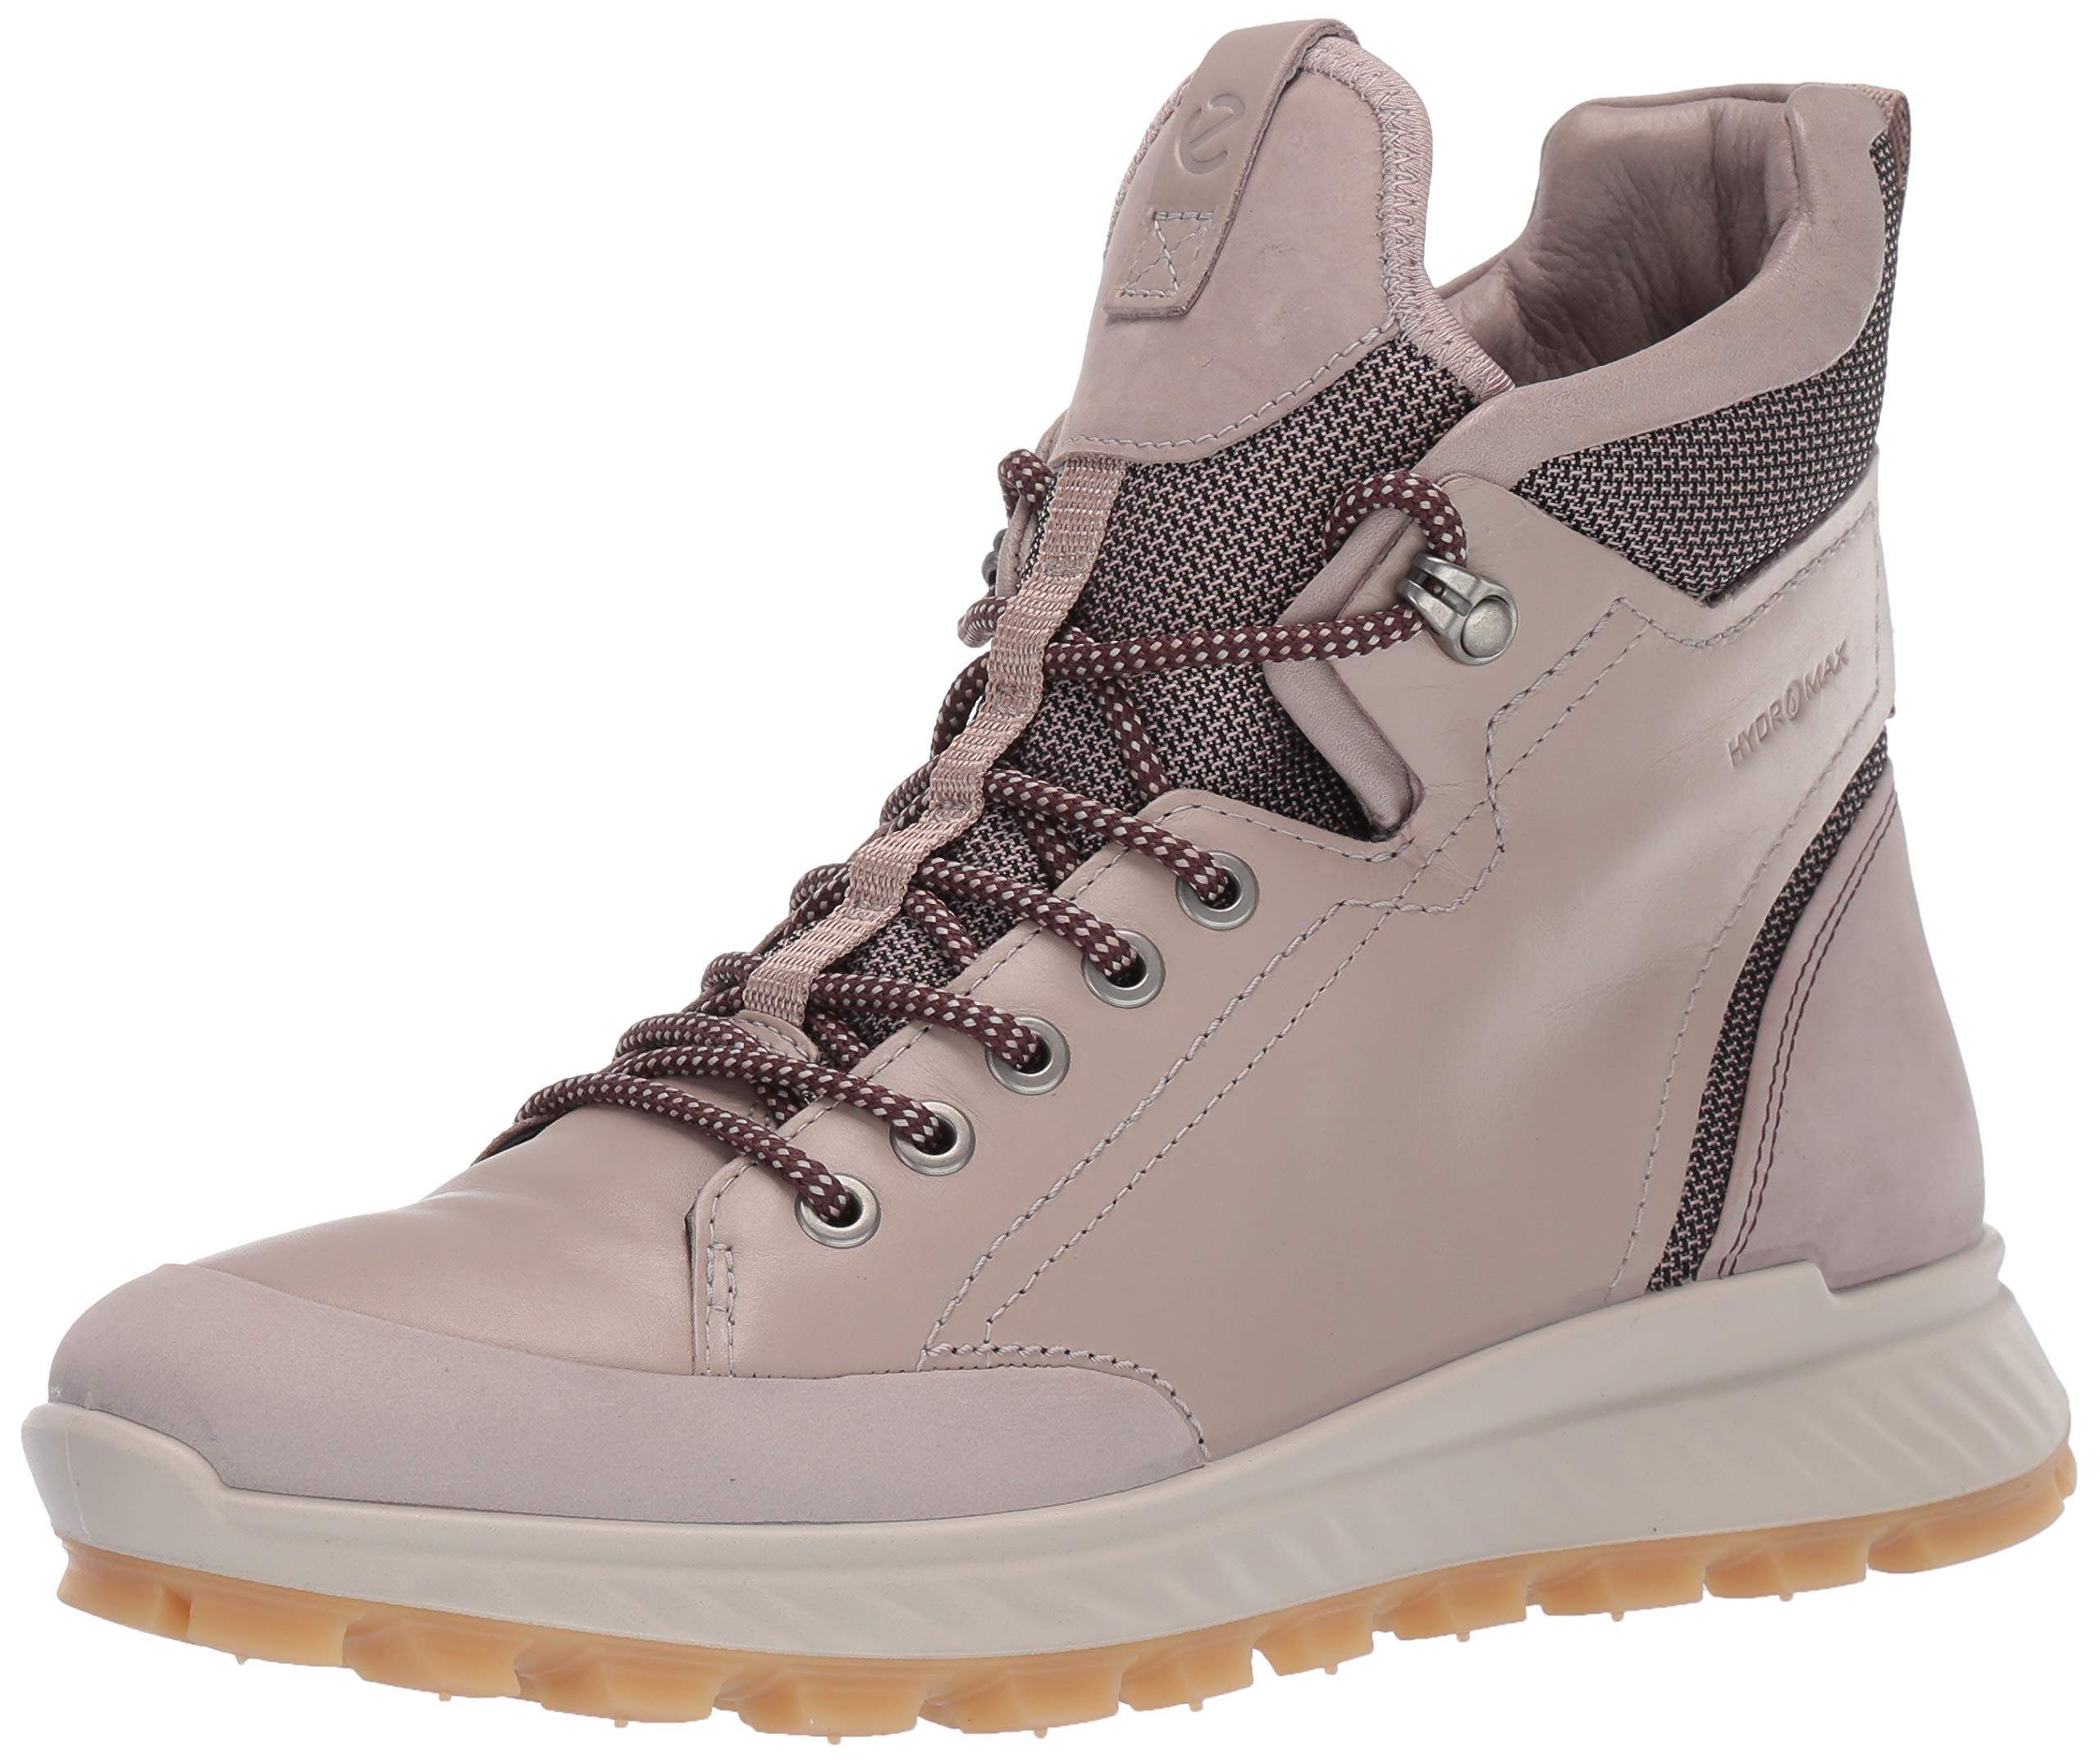 Exostrike HYDROMAX Ankle Boot - Outdoor Lifestyle, Hiking, grey rose/grey rose, 36 M EU (5-5.5 US) by ECCO